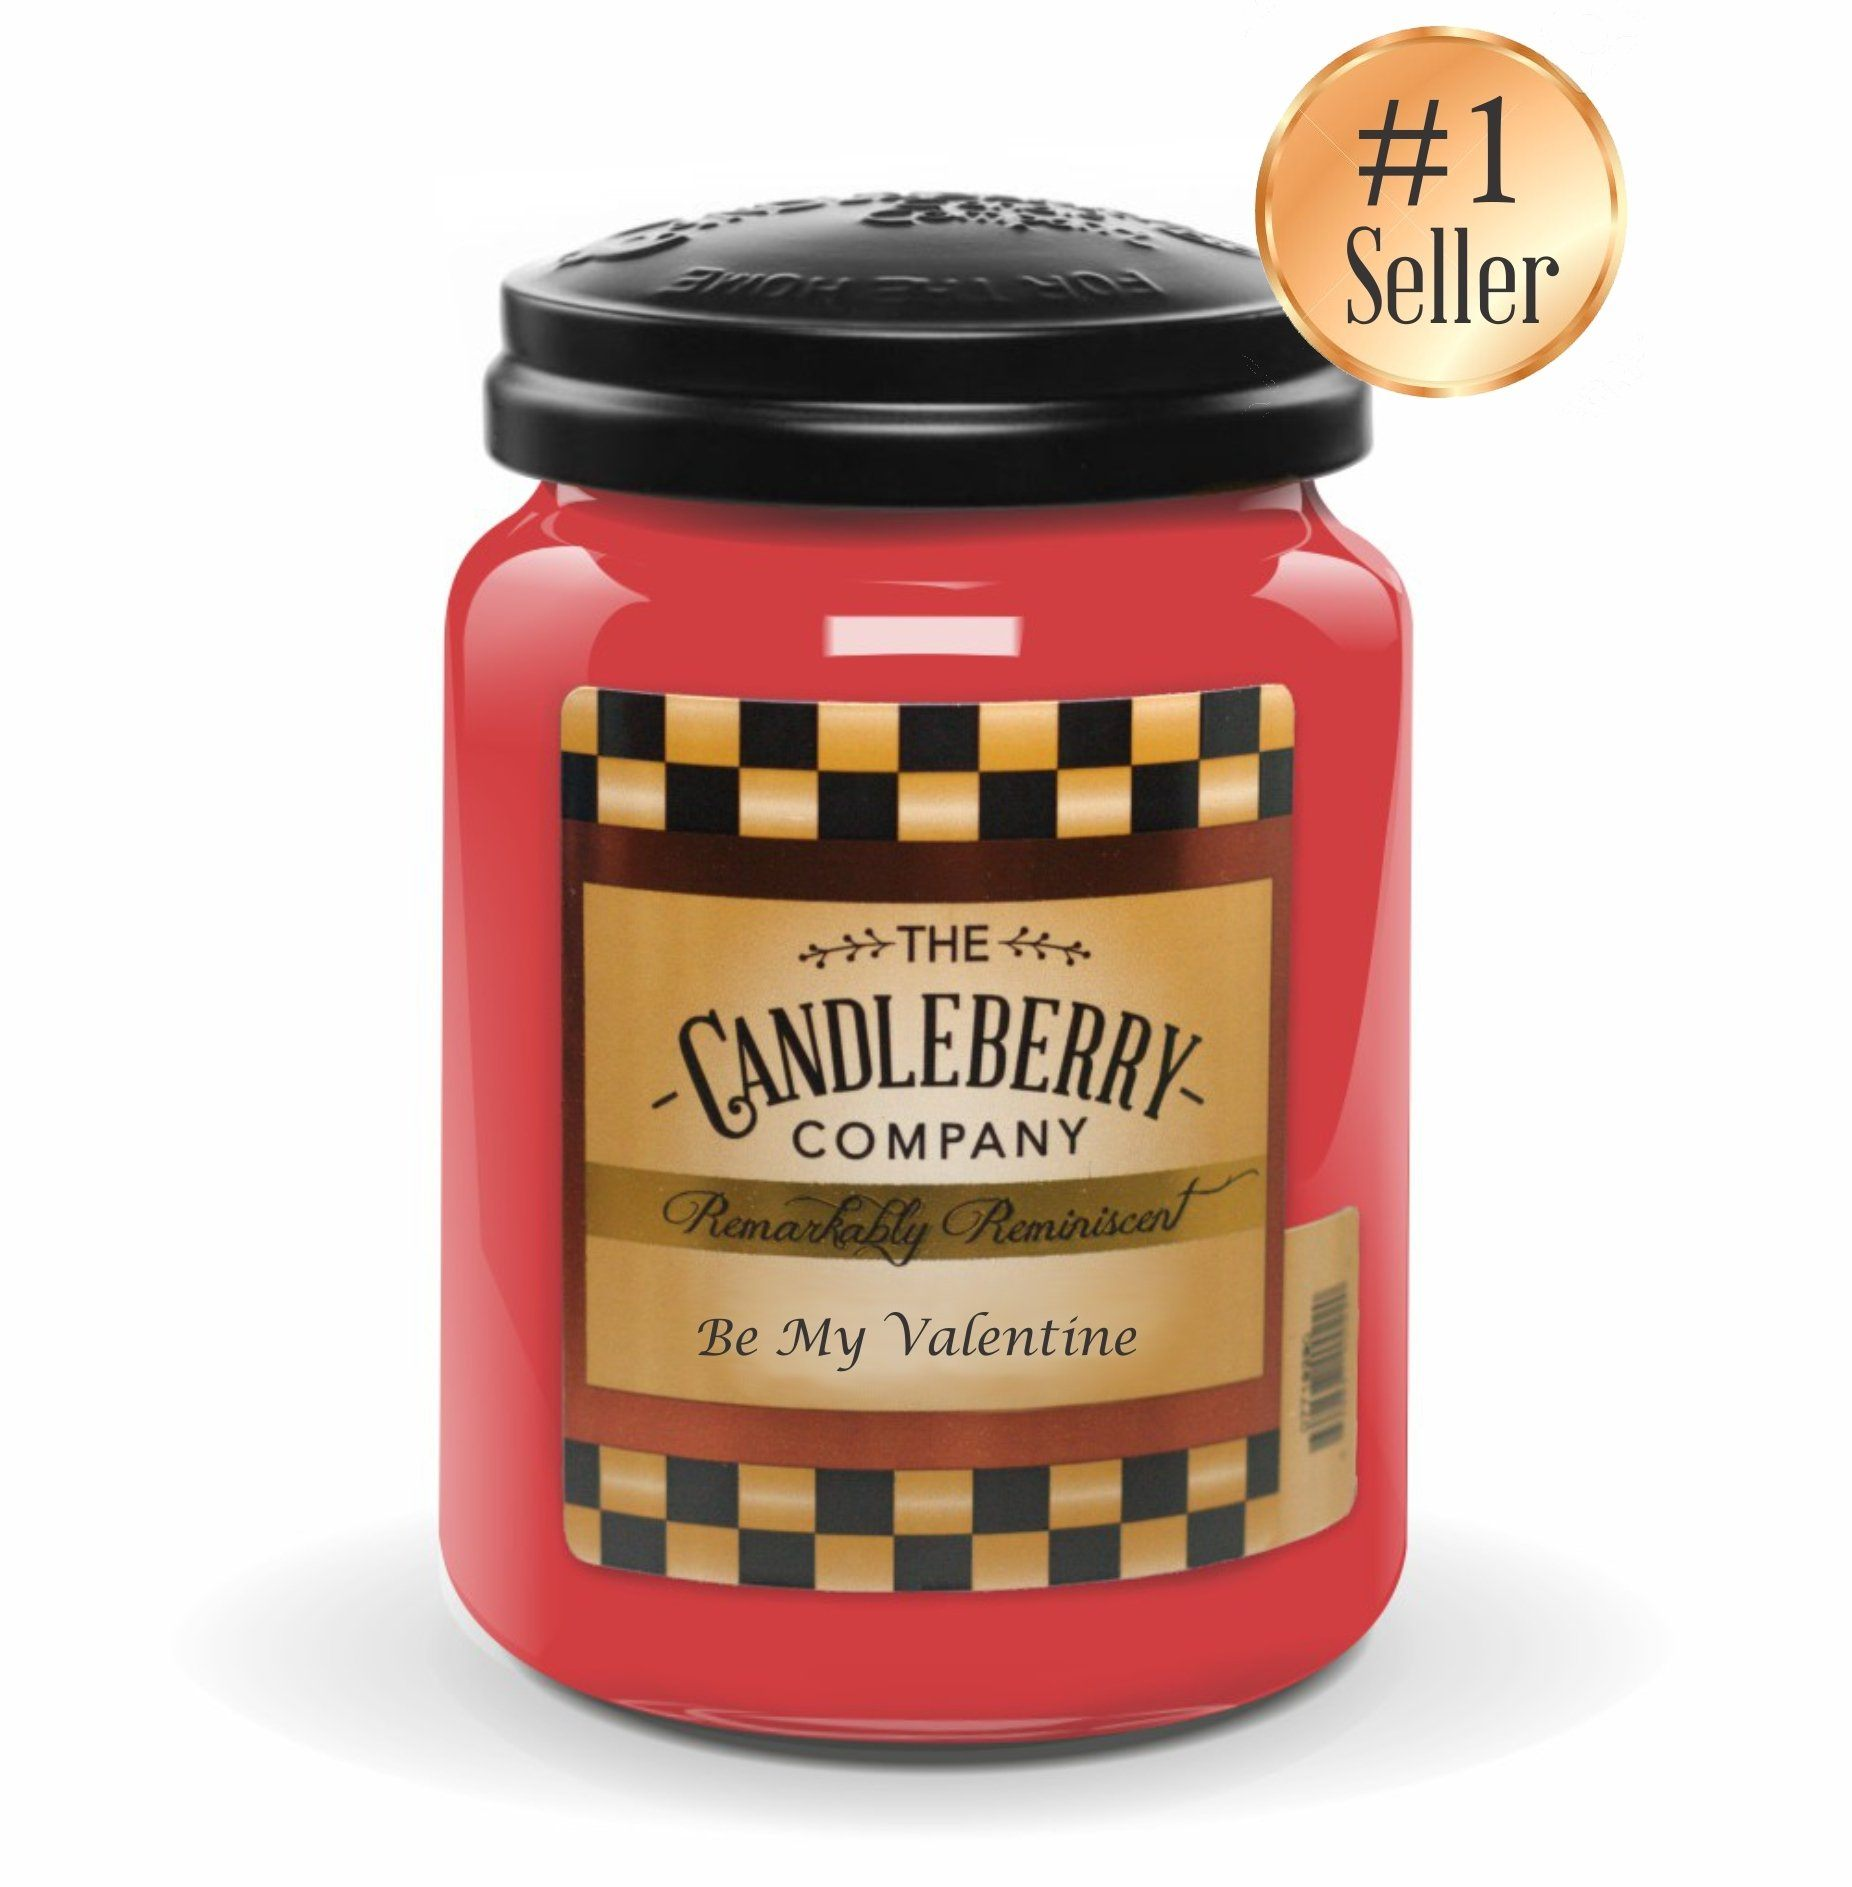 Be My Valentine™, 26 oz. Jar, Scented Candle 26 oz. Large Jar Candle The Candleberry Candle Company